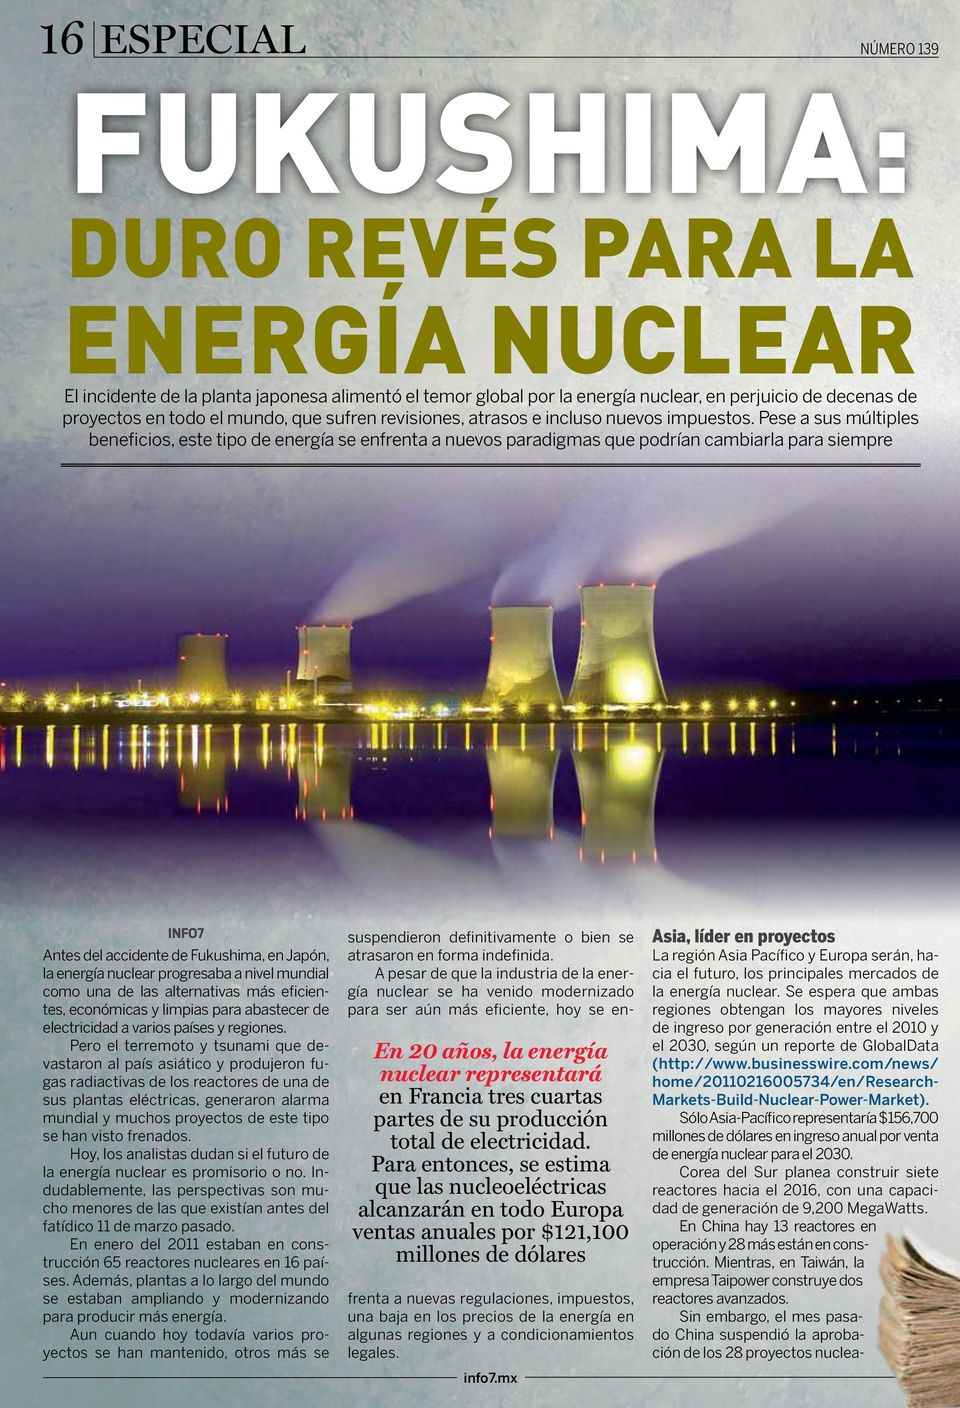 com/news/ home/20110216005734/en/research- Markets-Build-Nuclear-Power-Market).